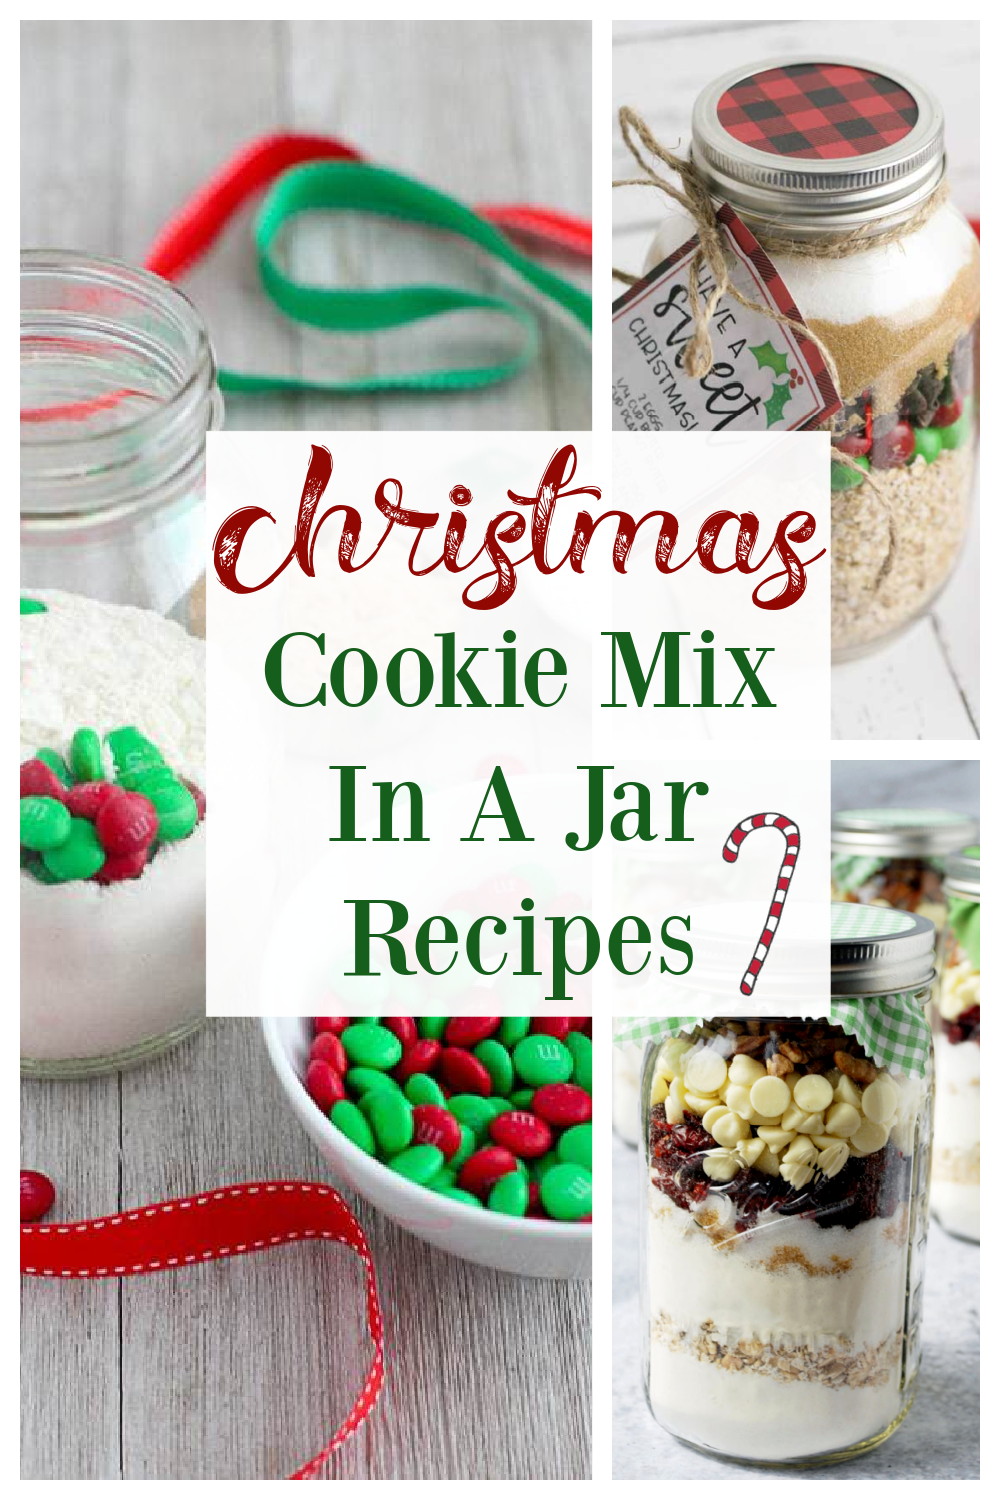 A round-up of delicious Christmas cookie mix in a jar recipes for holiday gift-giving.  Homemade gifts are the best and everyone will love receiving these from-scratch mason jar treats!  #cookiemixinjars #jarcookiemix #masonjarcookies #christmascookies #diygifts #foodiegifts via @Ameessavorydish